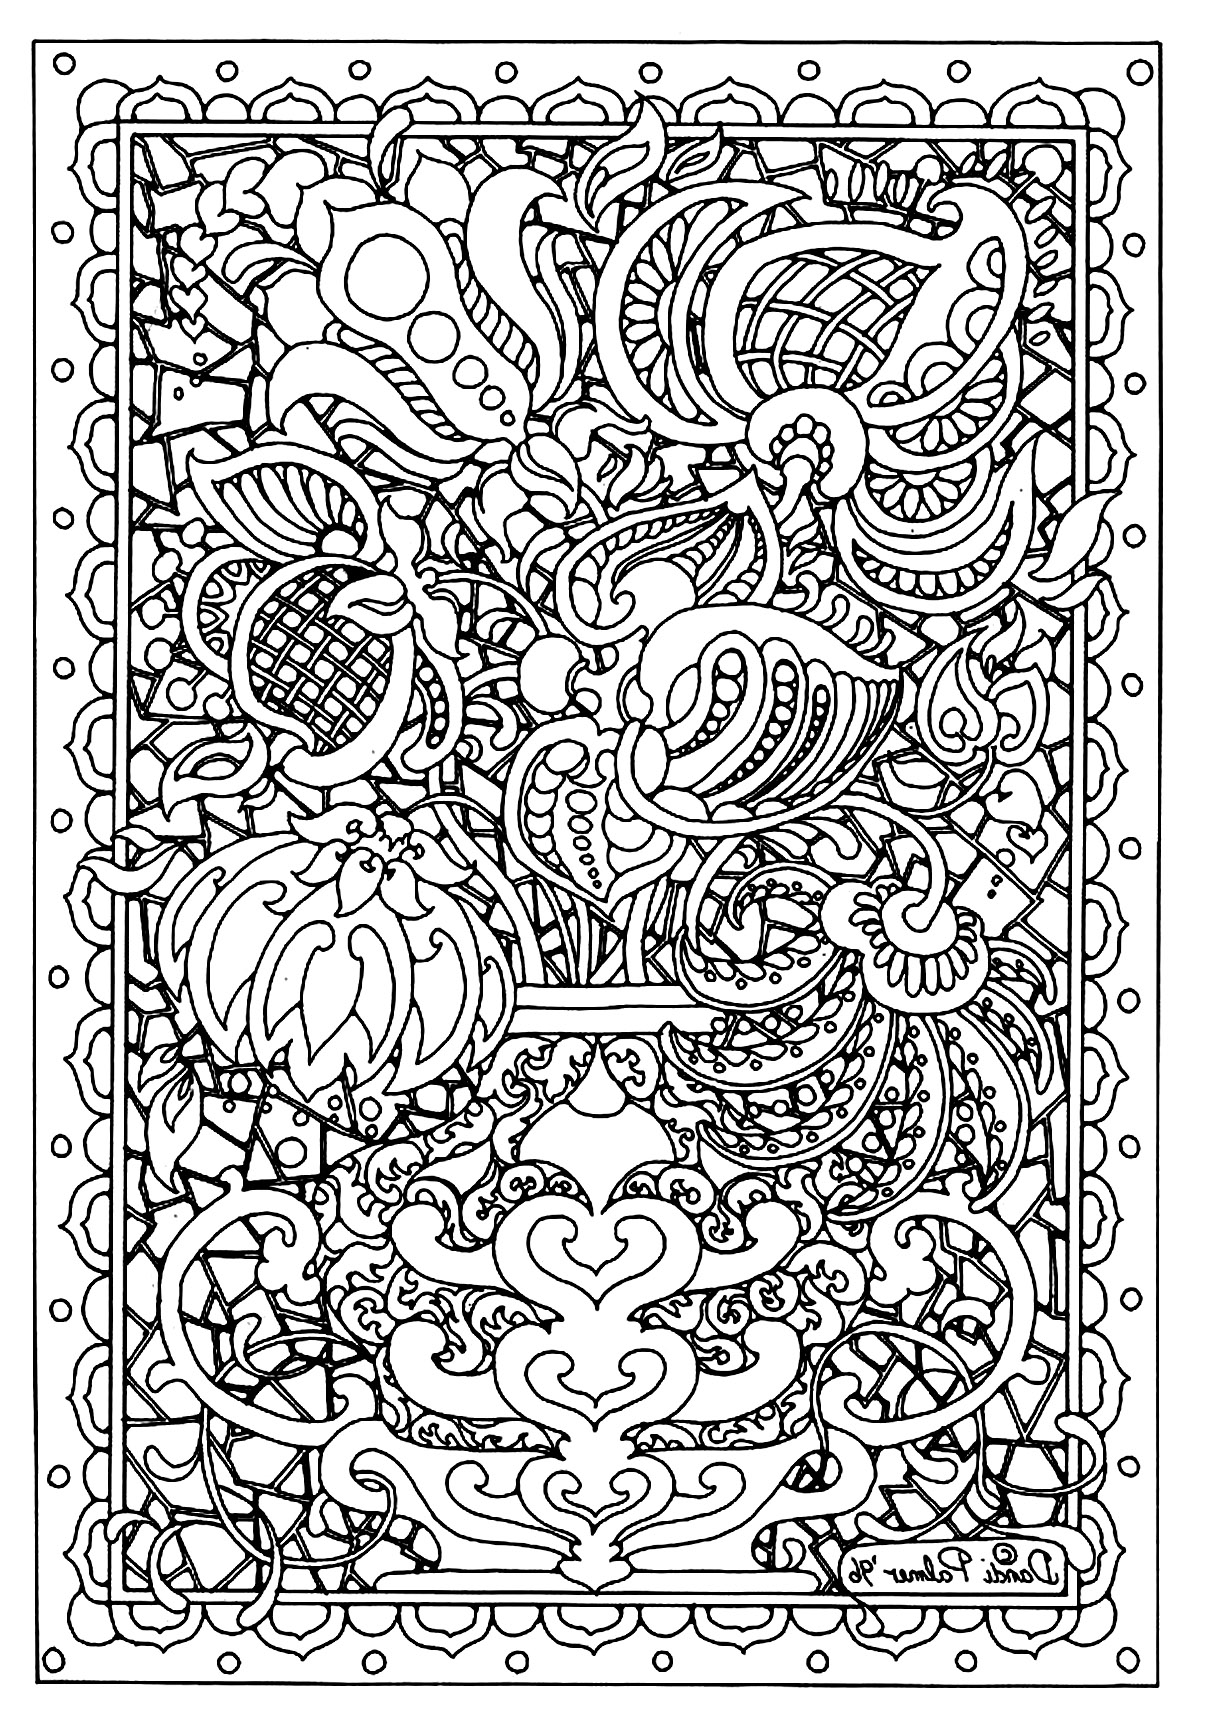 Flower Coloring Pages for Adults - Best Coloring Pages For Kids | 1722x1220